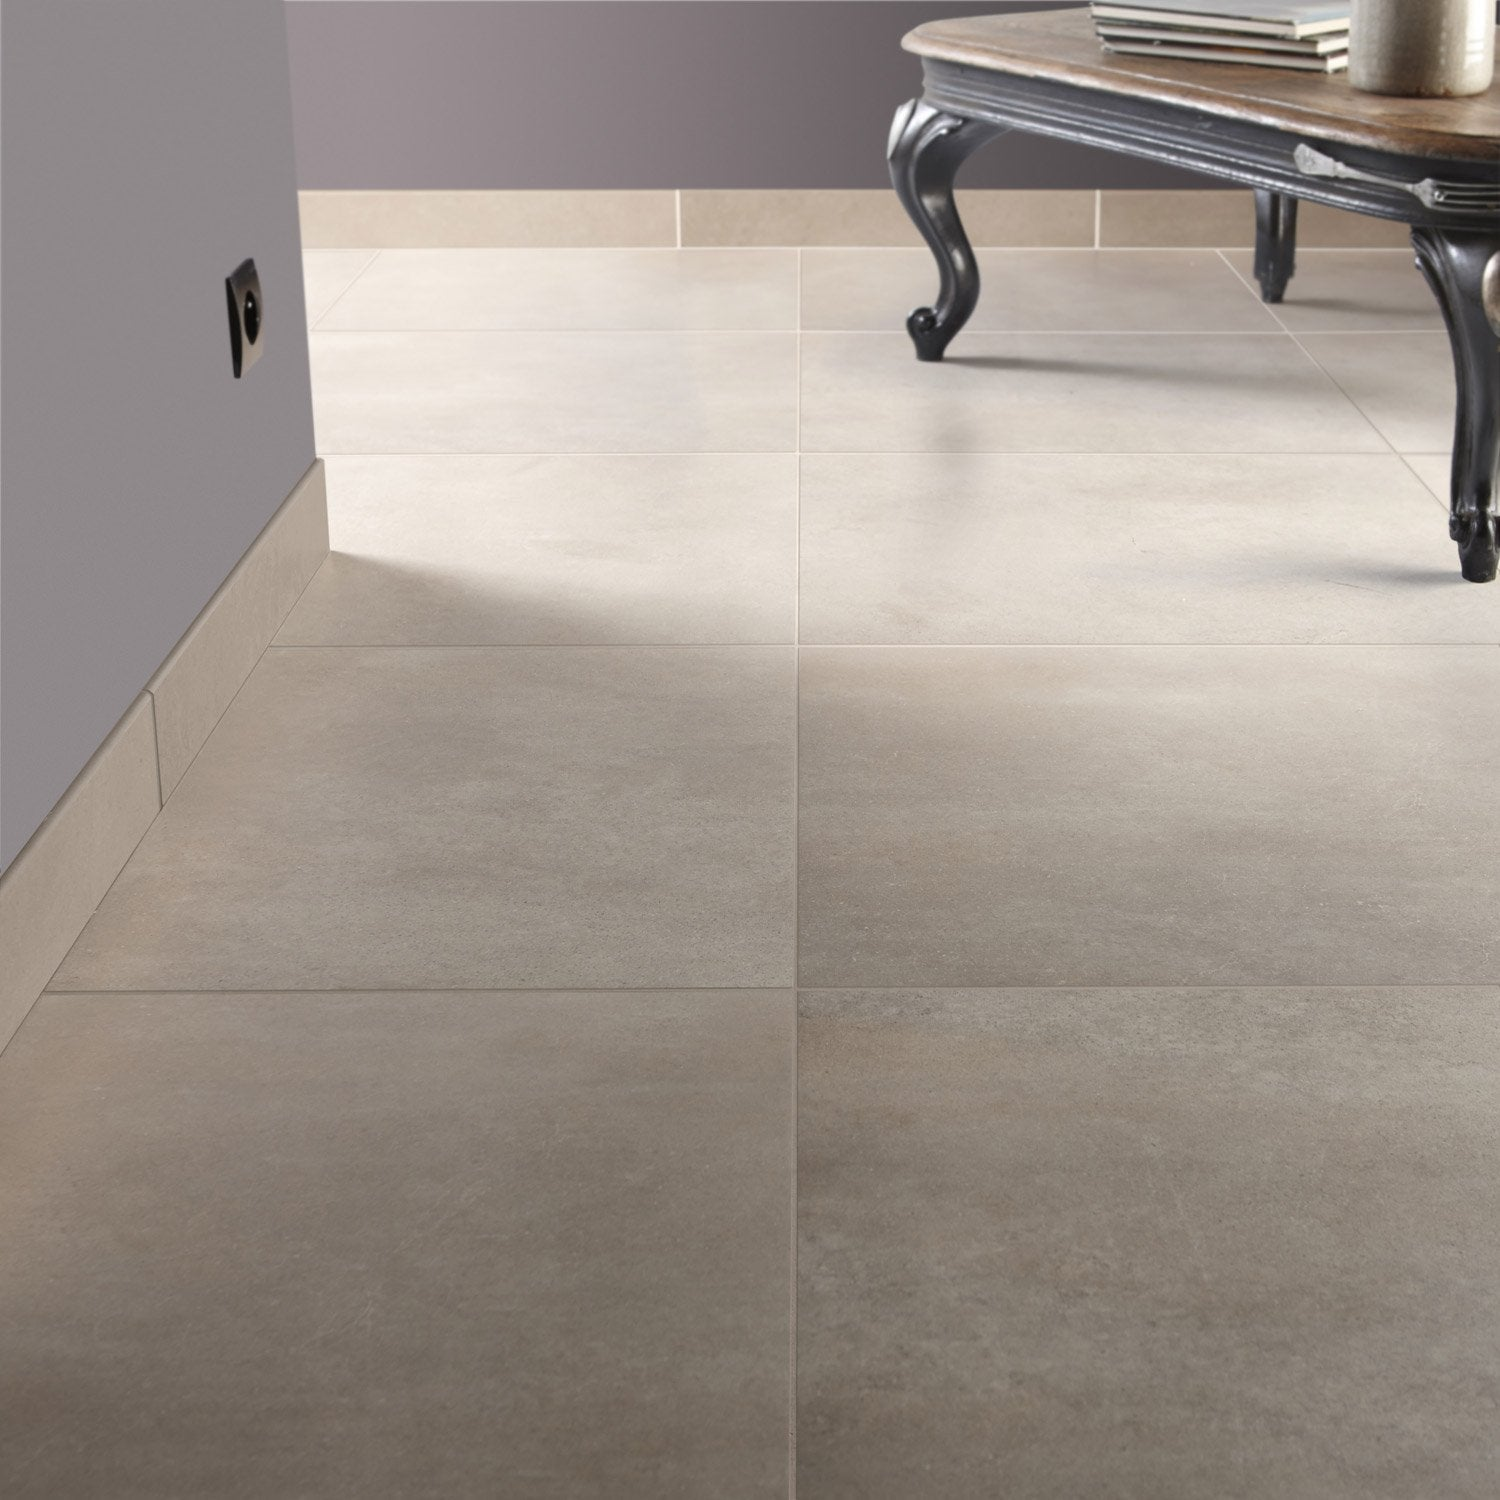 Carrelage sol et mur sable effet pierre roma x for Carrelage clipsable leroy merlin